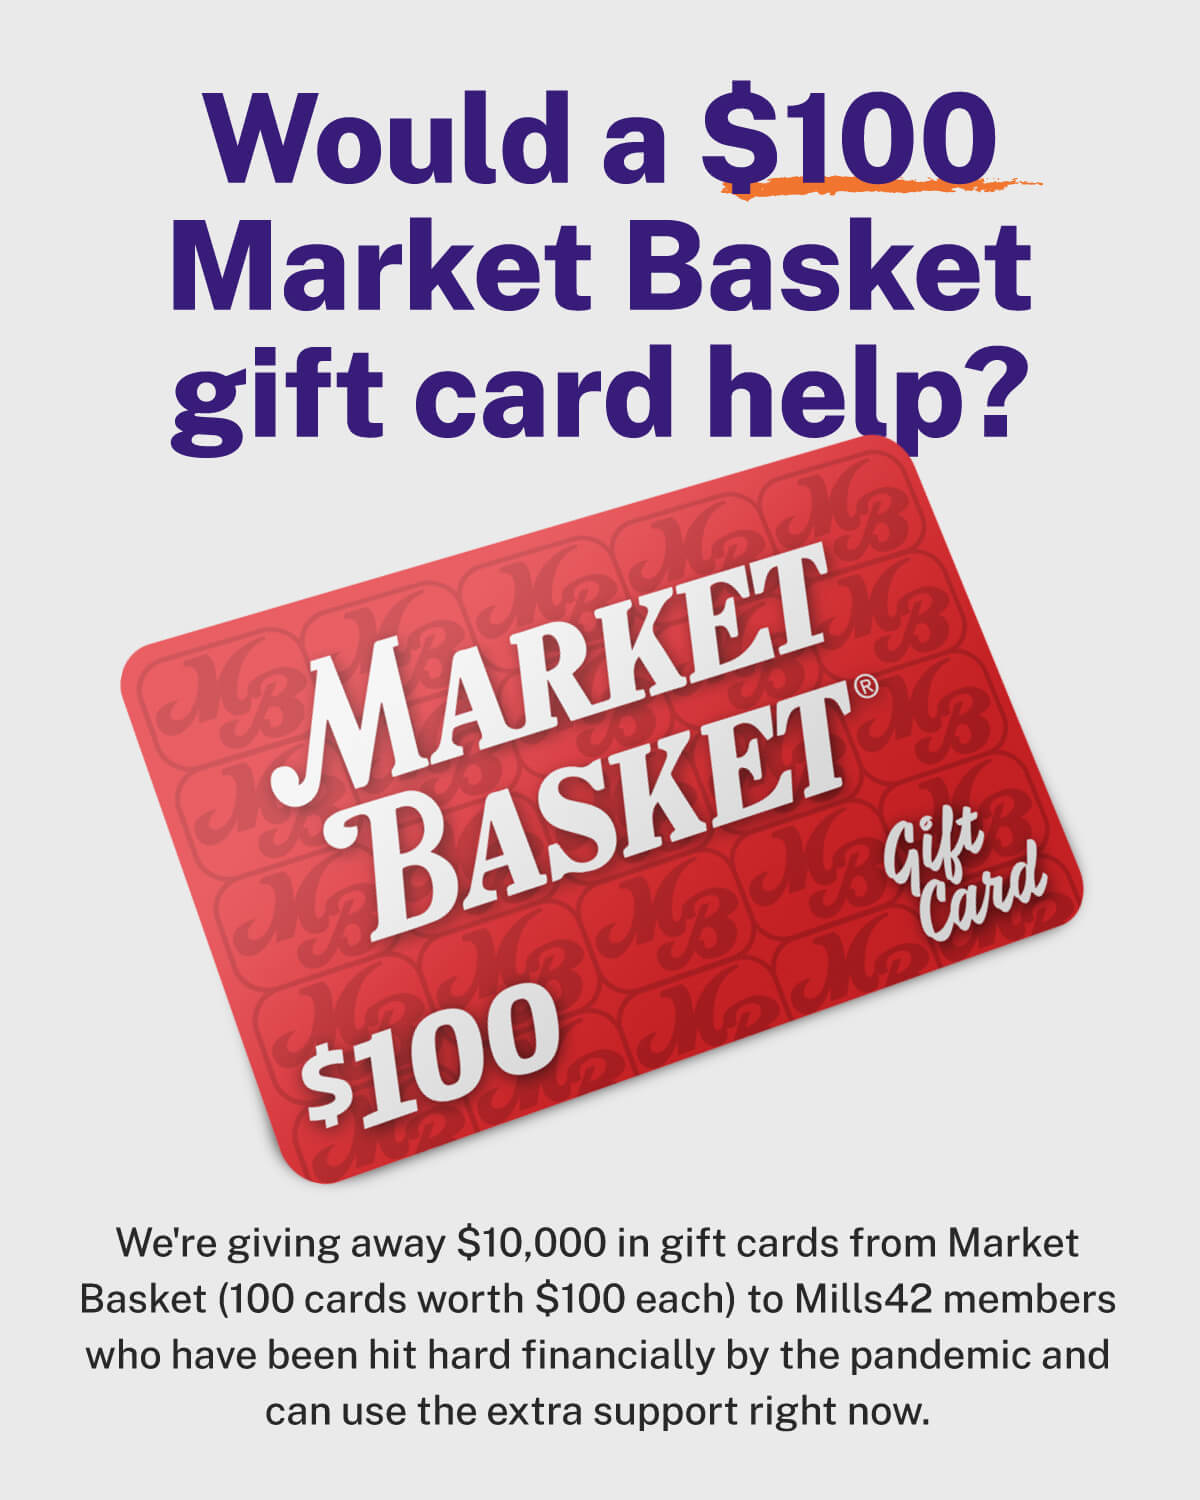 Would a $100 Market Basket gift card help?